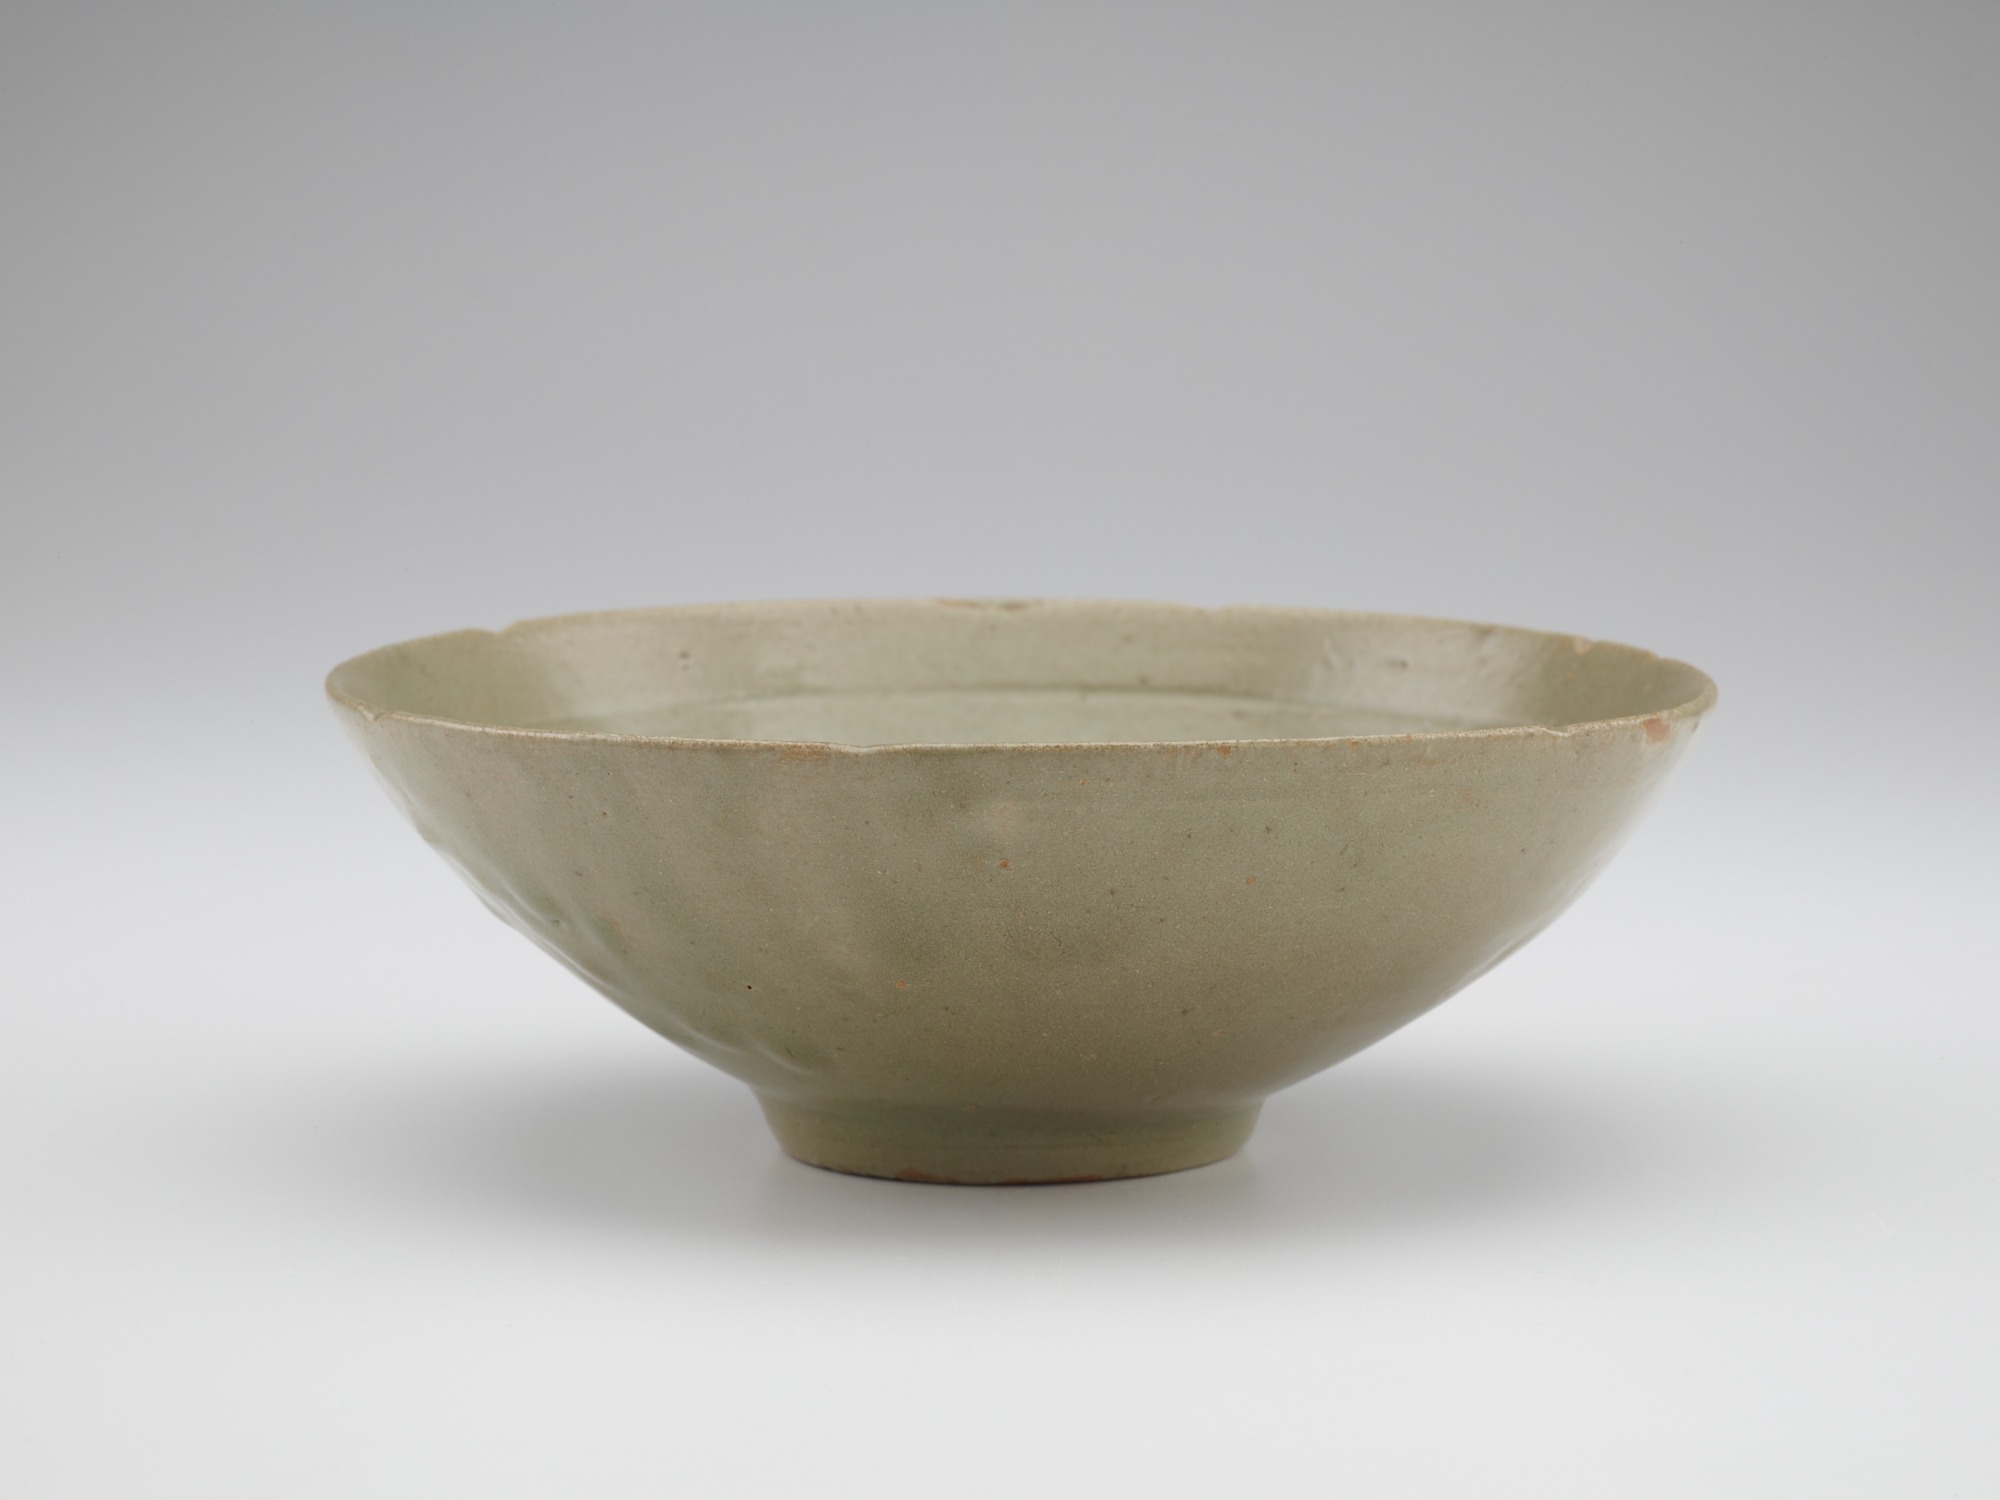 Bowl with molded floral design, profile